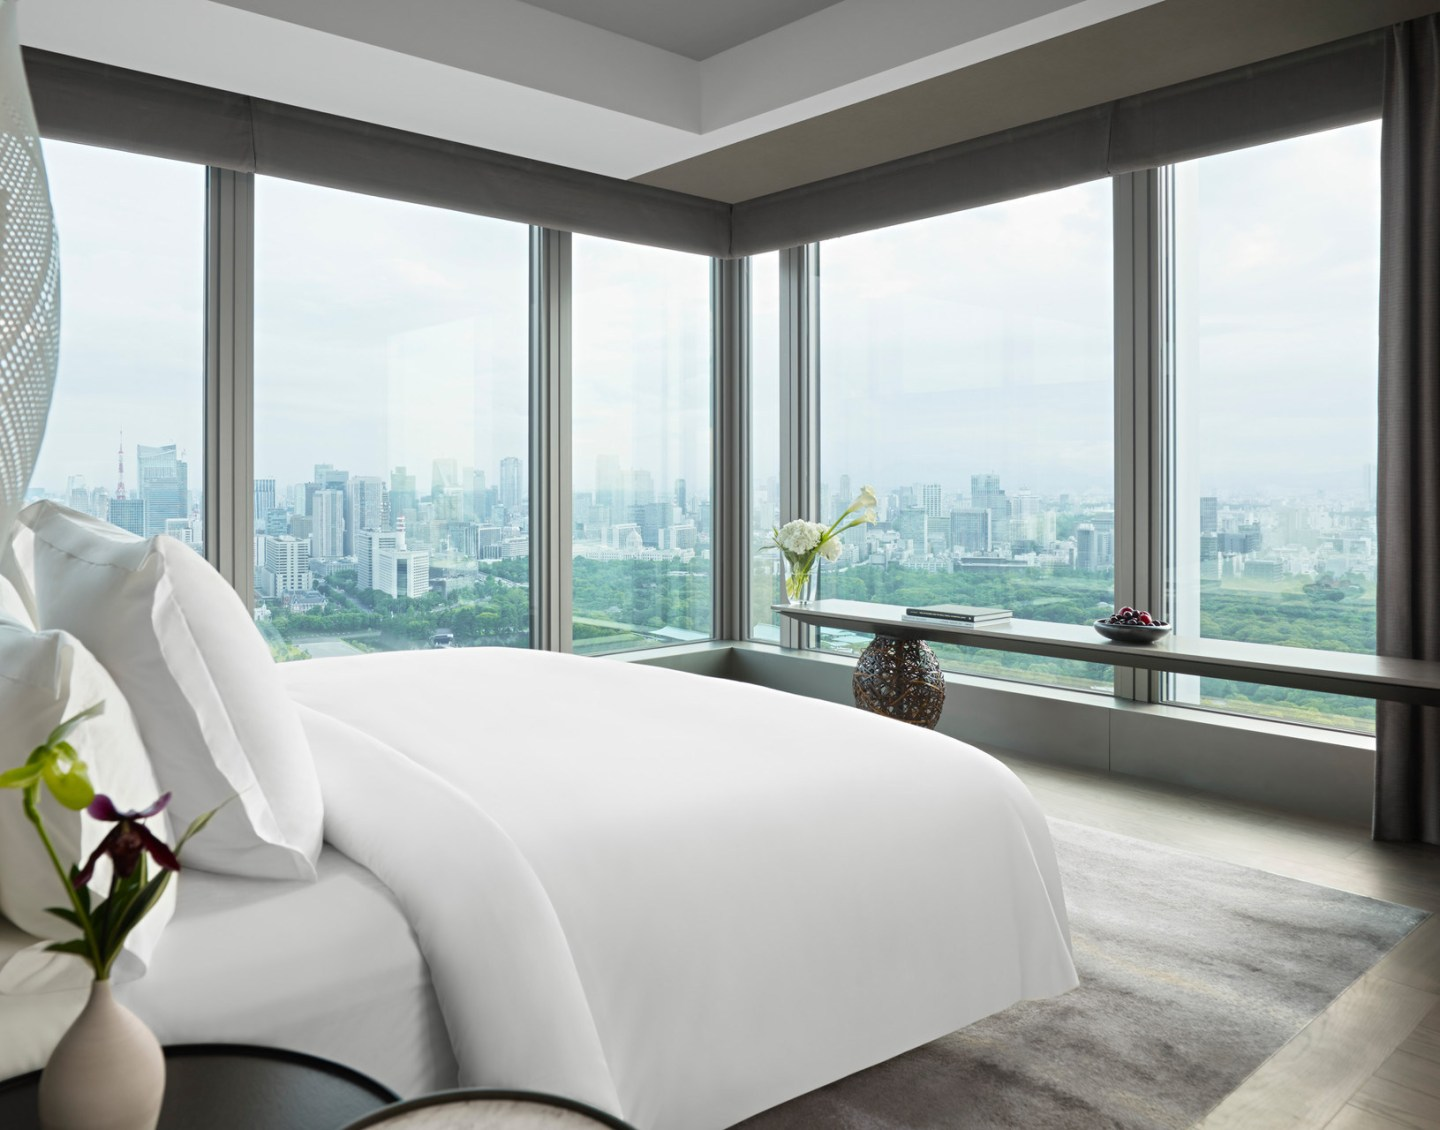 New Four Seasons Hotel Tokyo Soars Above the City